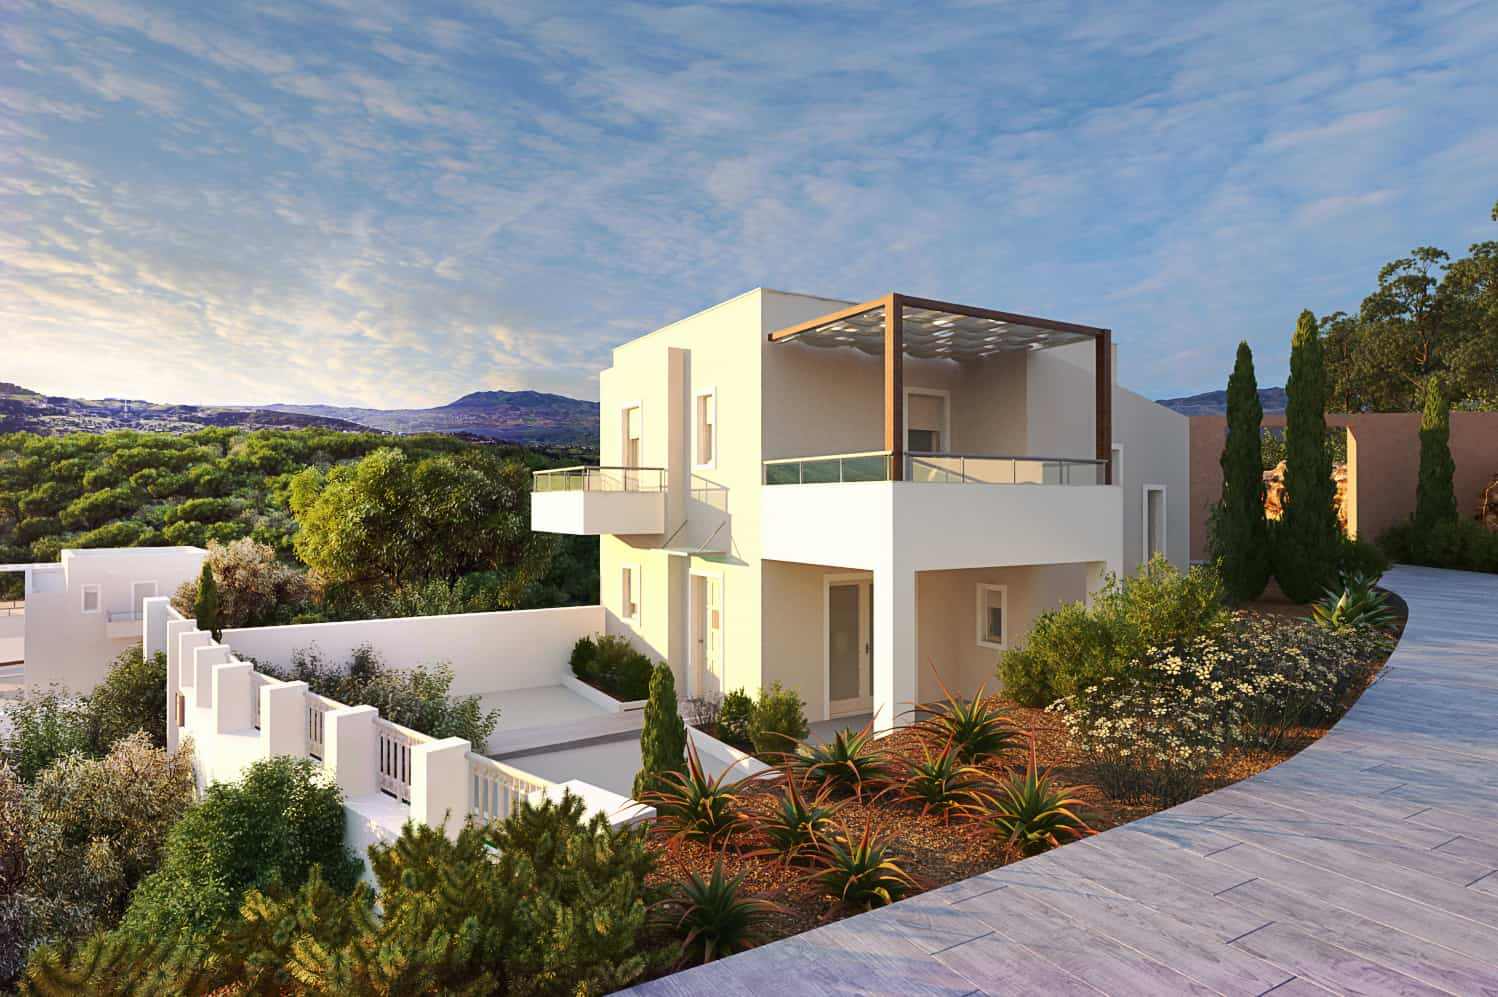 3d exterior home design 3d architectural renderings fourthedesign 3d animation architecture visualization